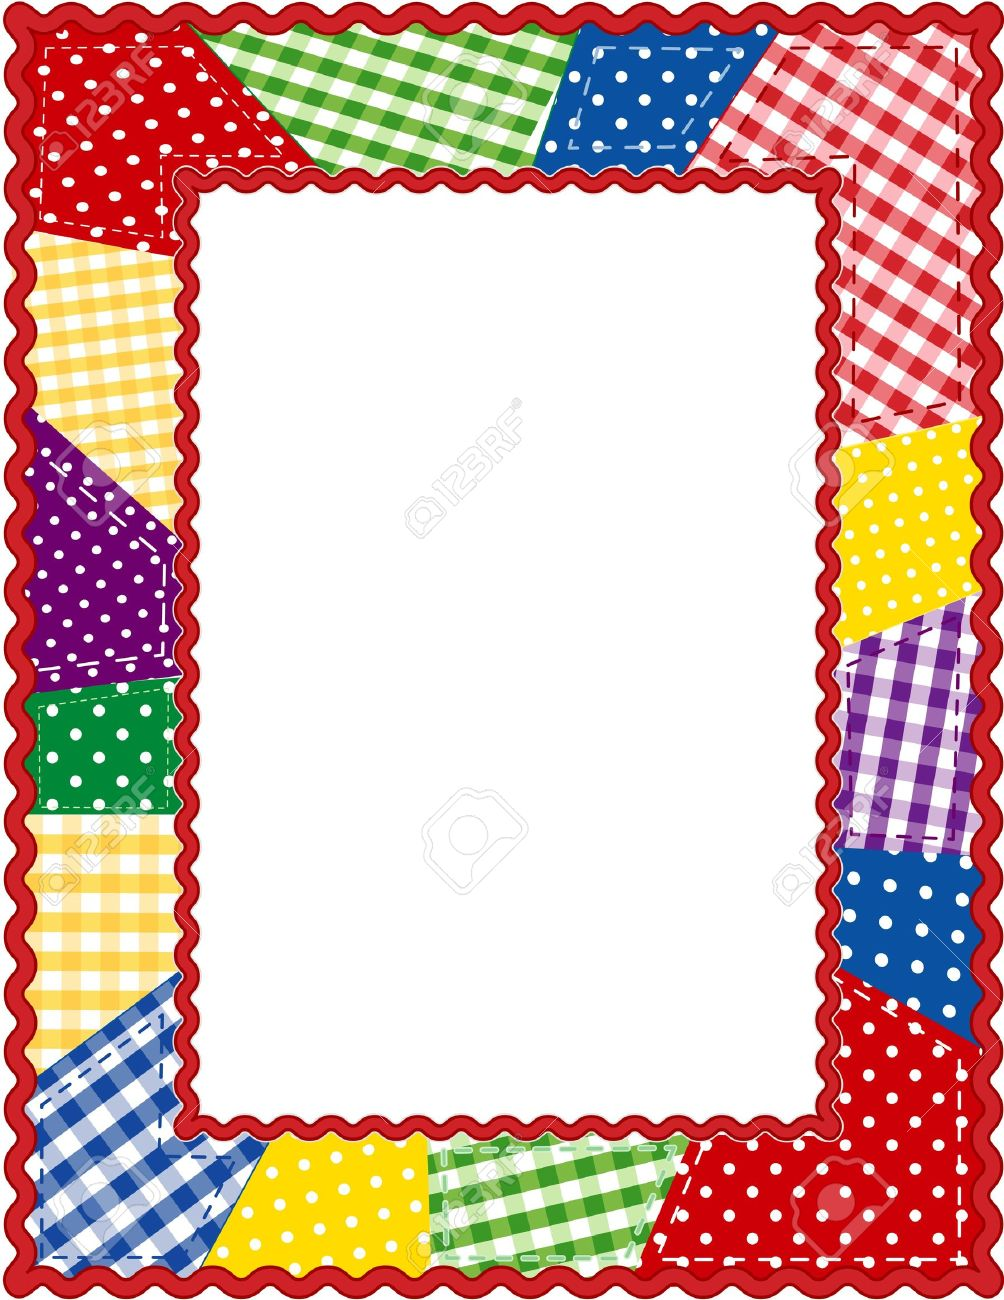 Christmas Quilts Borders Clipart.